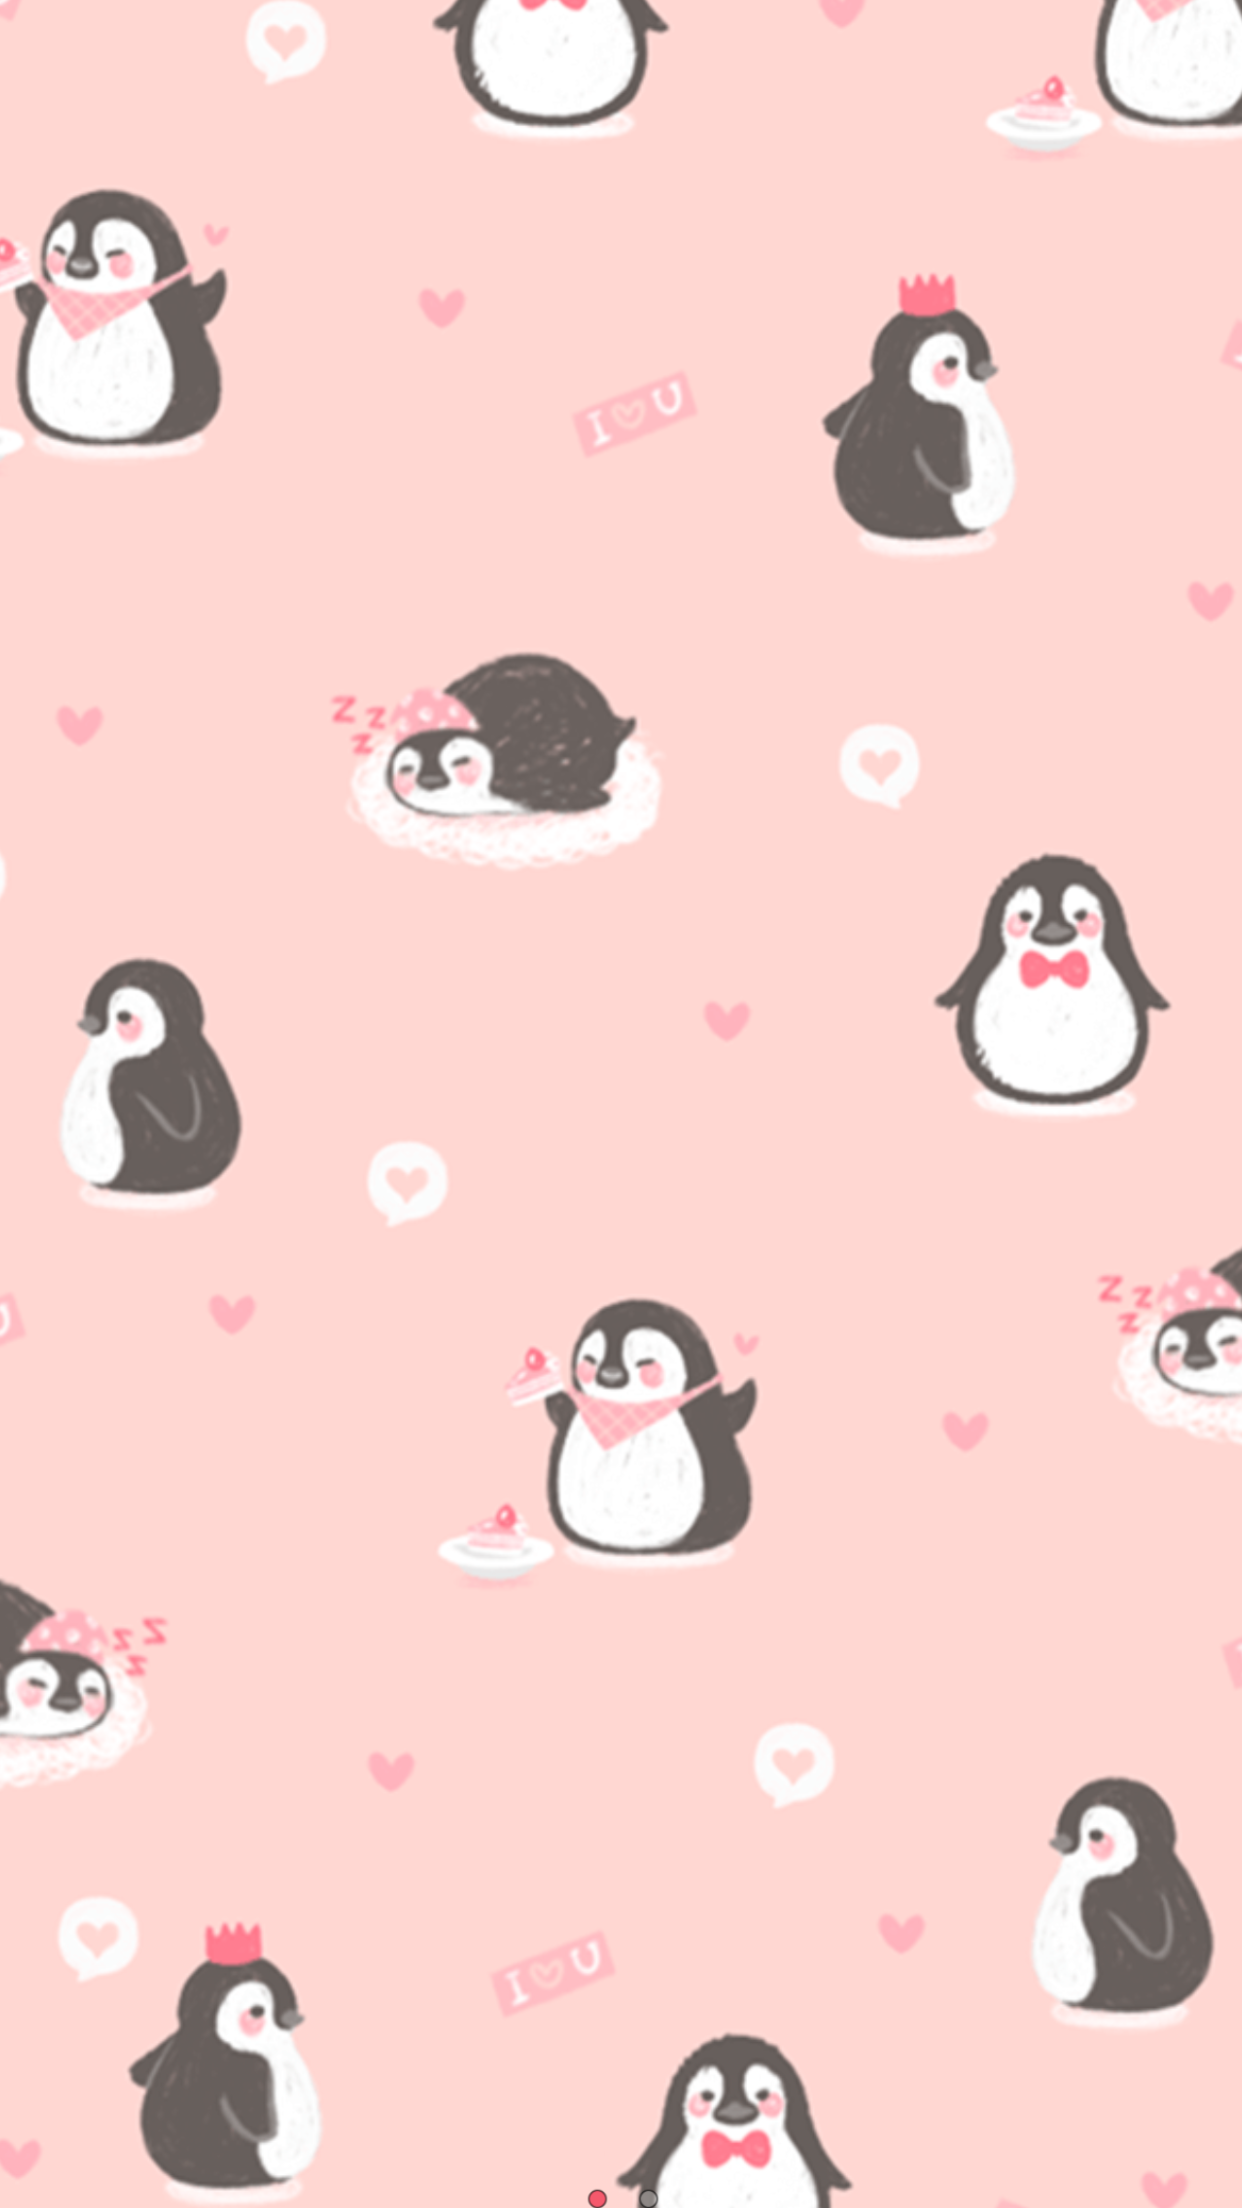 Penguin Wallpaper By Ari Jimenez Mndez Random Lockscreens 1242x2208